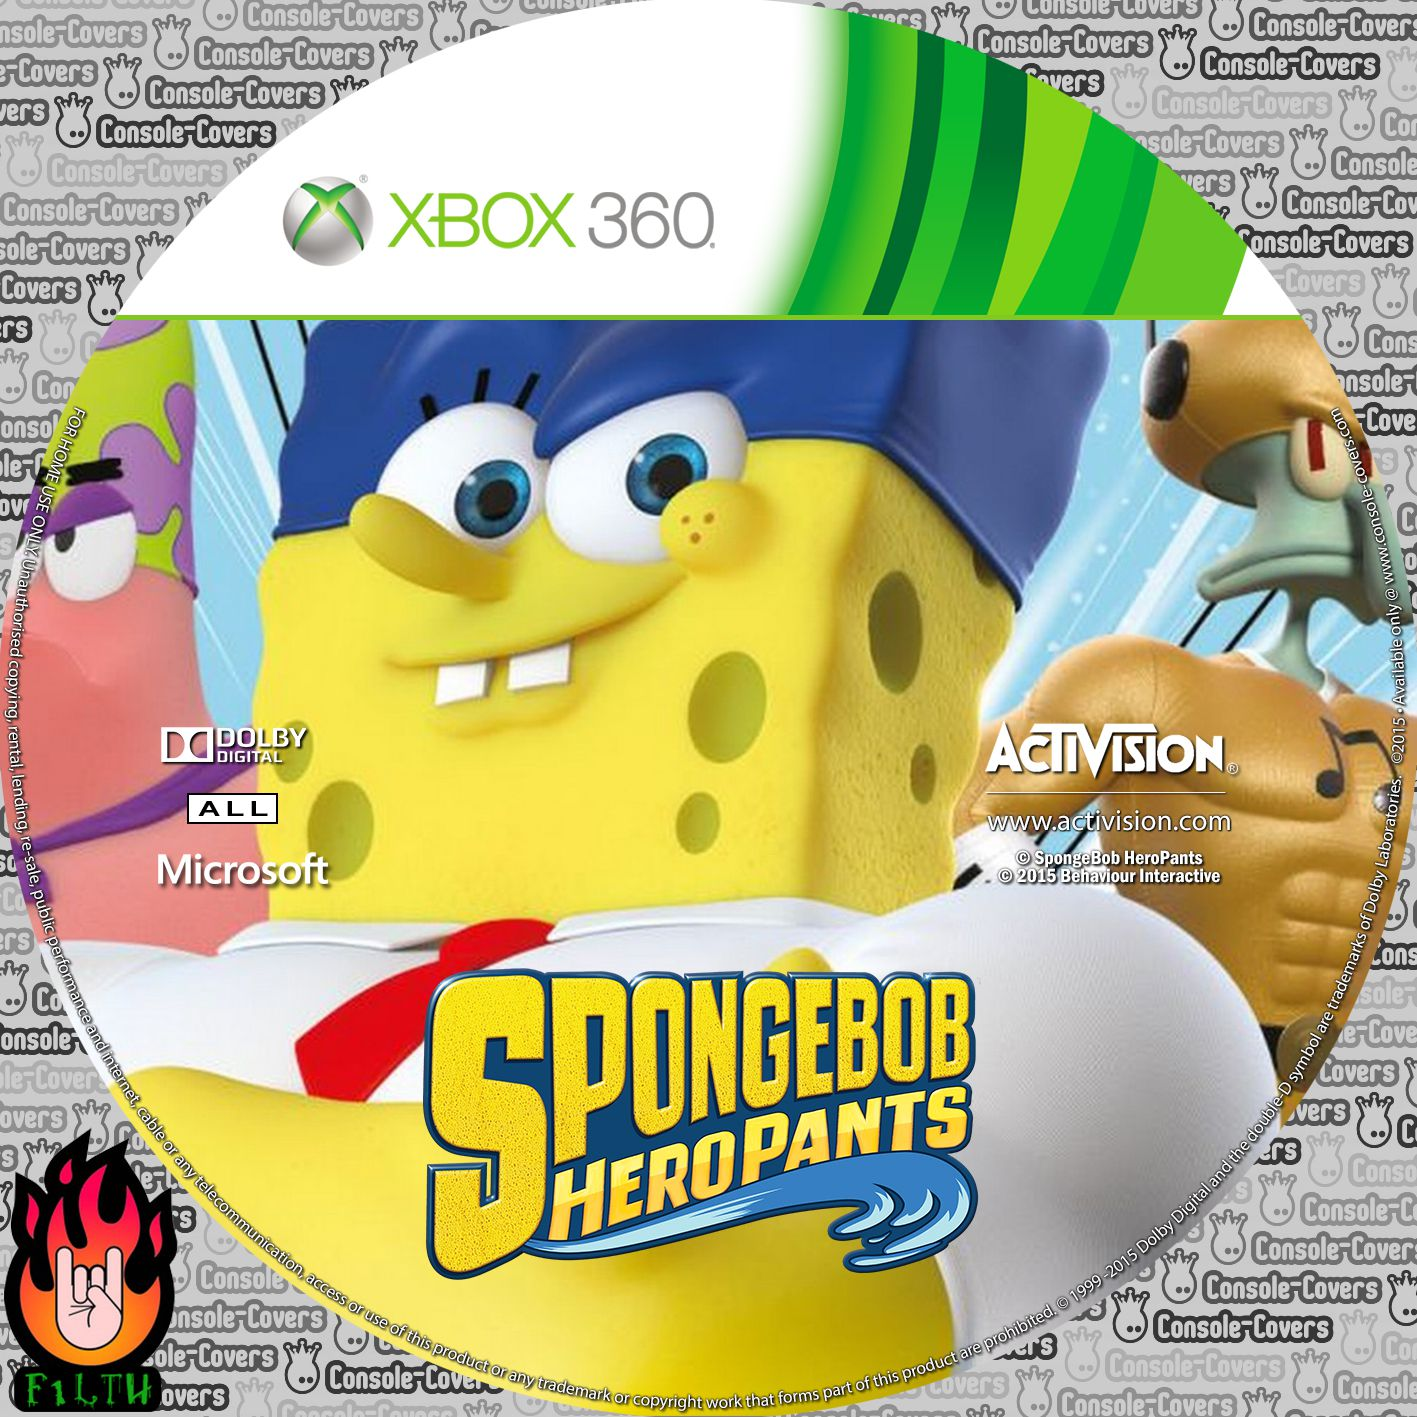 Label SpongeBob HeroPants Xbox 360